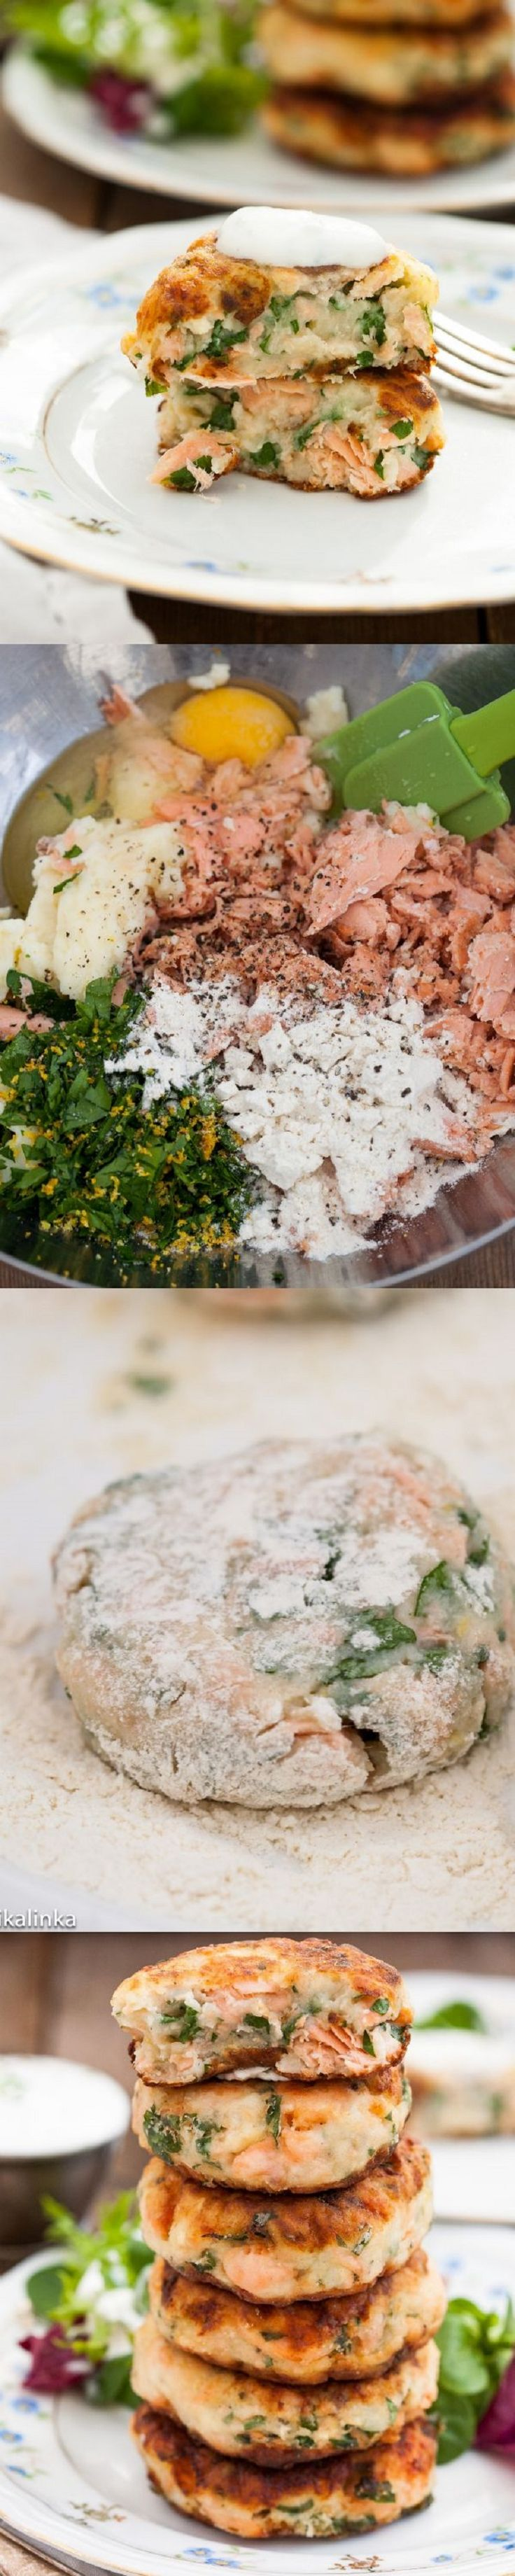 Salmon Cakes with Chive and Garlic Sauce - 15 Tremendous Salmon Patties | GleamItUp